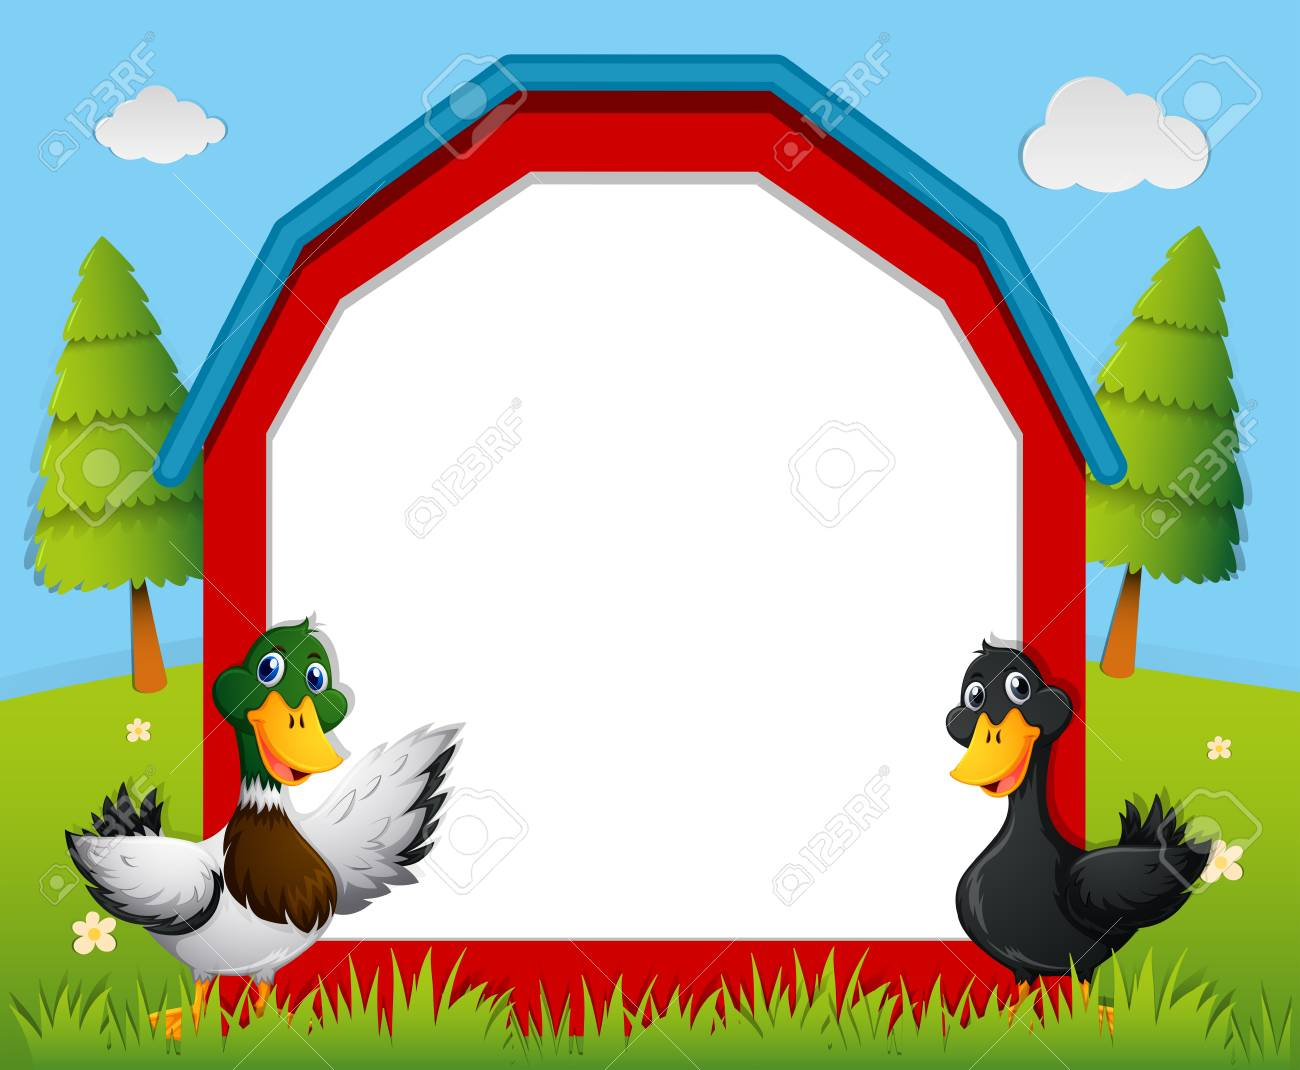 Border Template With Ducks In The Farm Illustration Royalty Free ...